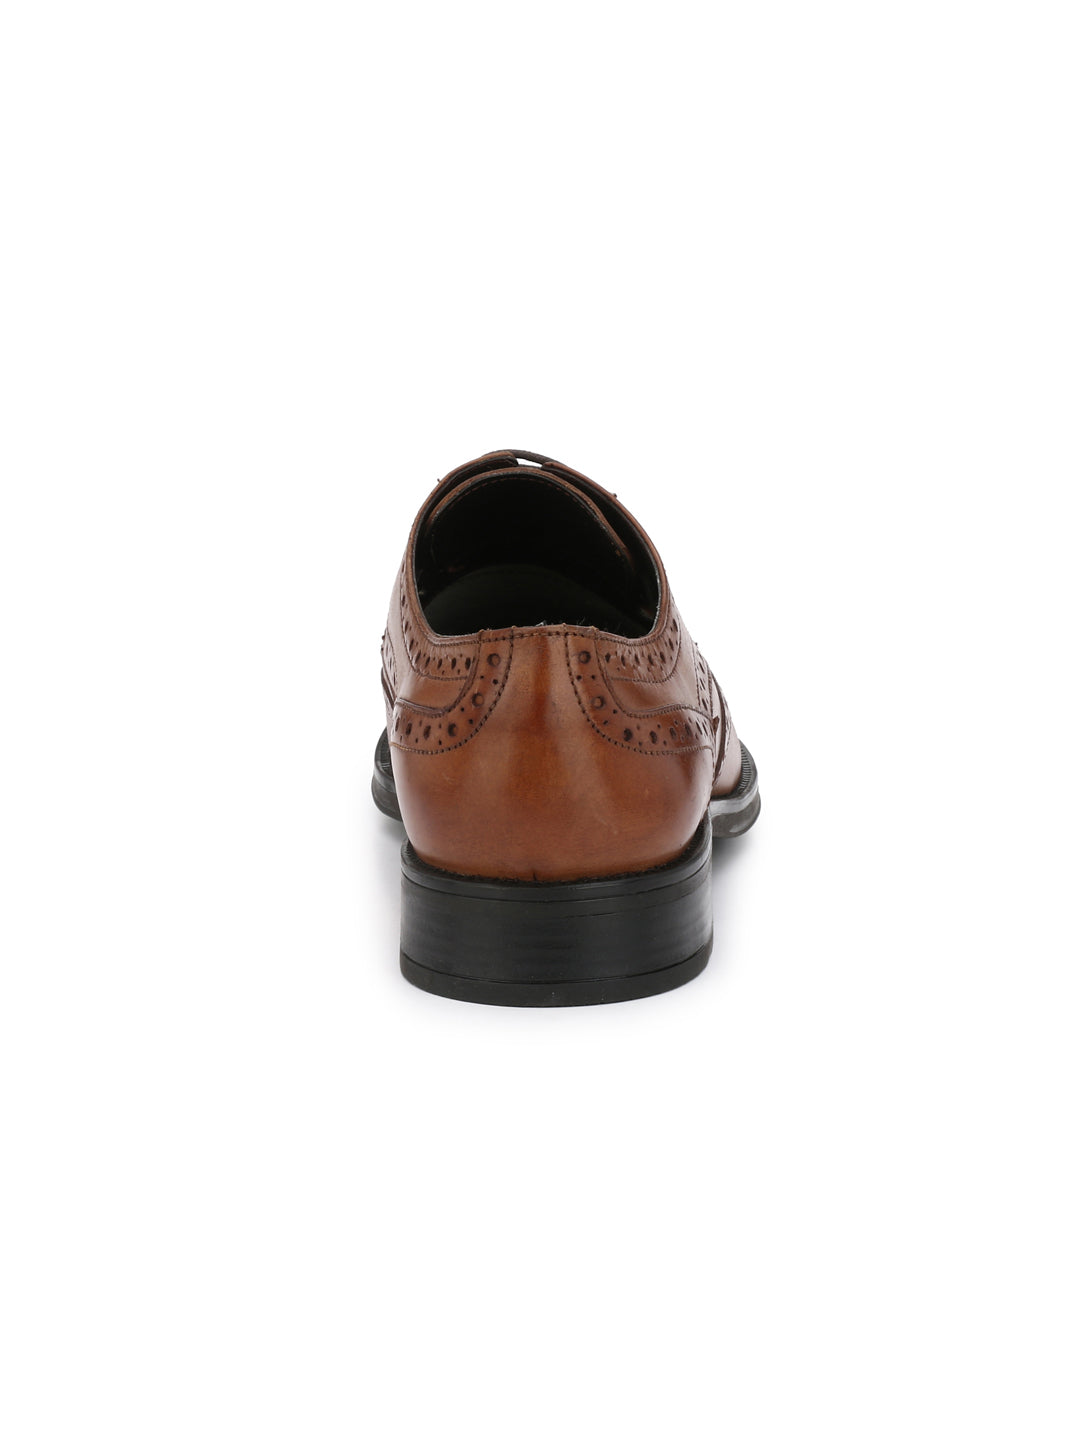 Alberto Torresi Croma TAN Formal Shoes